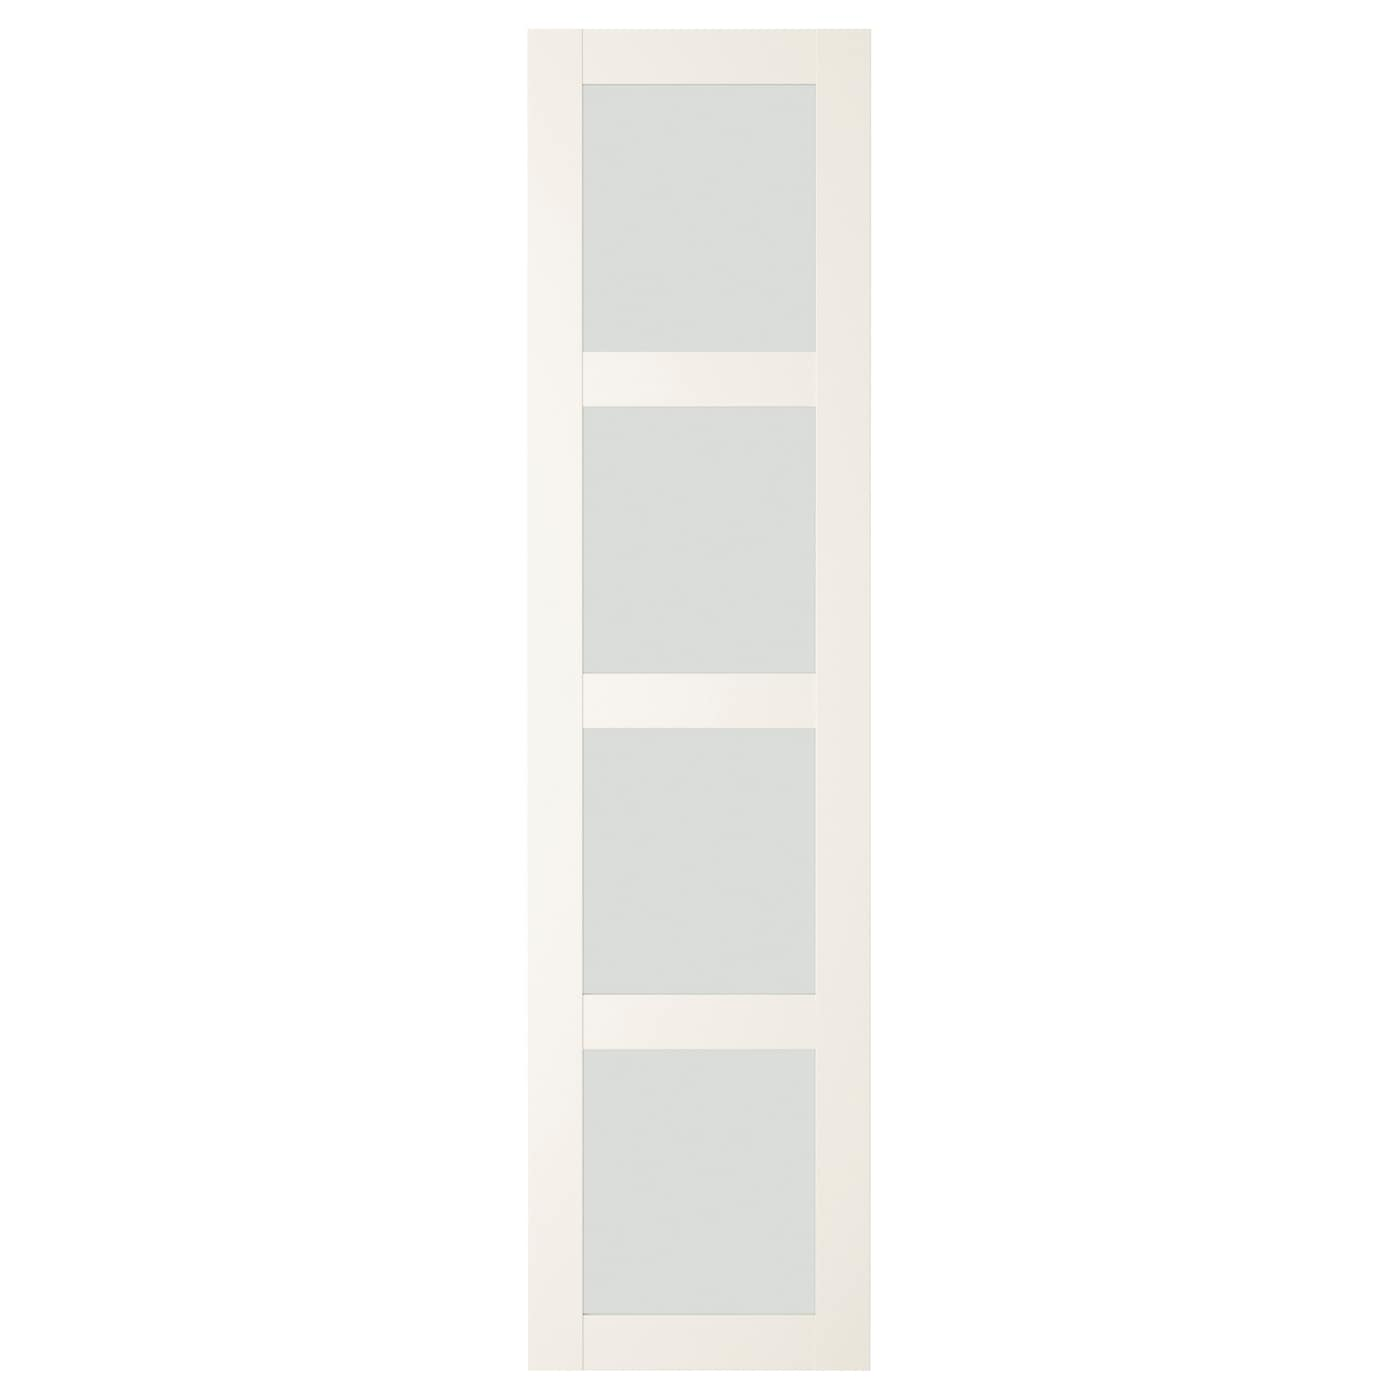 Ikea pax bergsbo frostglas  BERGSBO Door with hinges Frosted glass/white 50x195 cm - IKEA